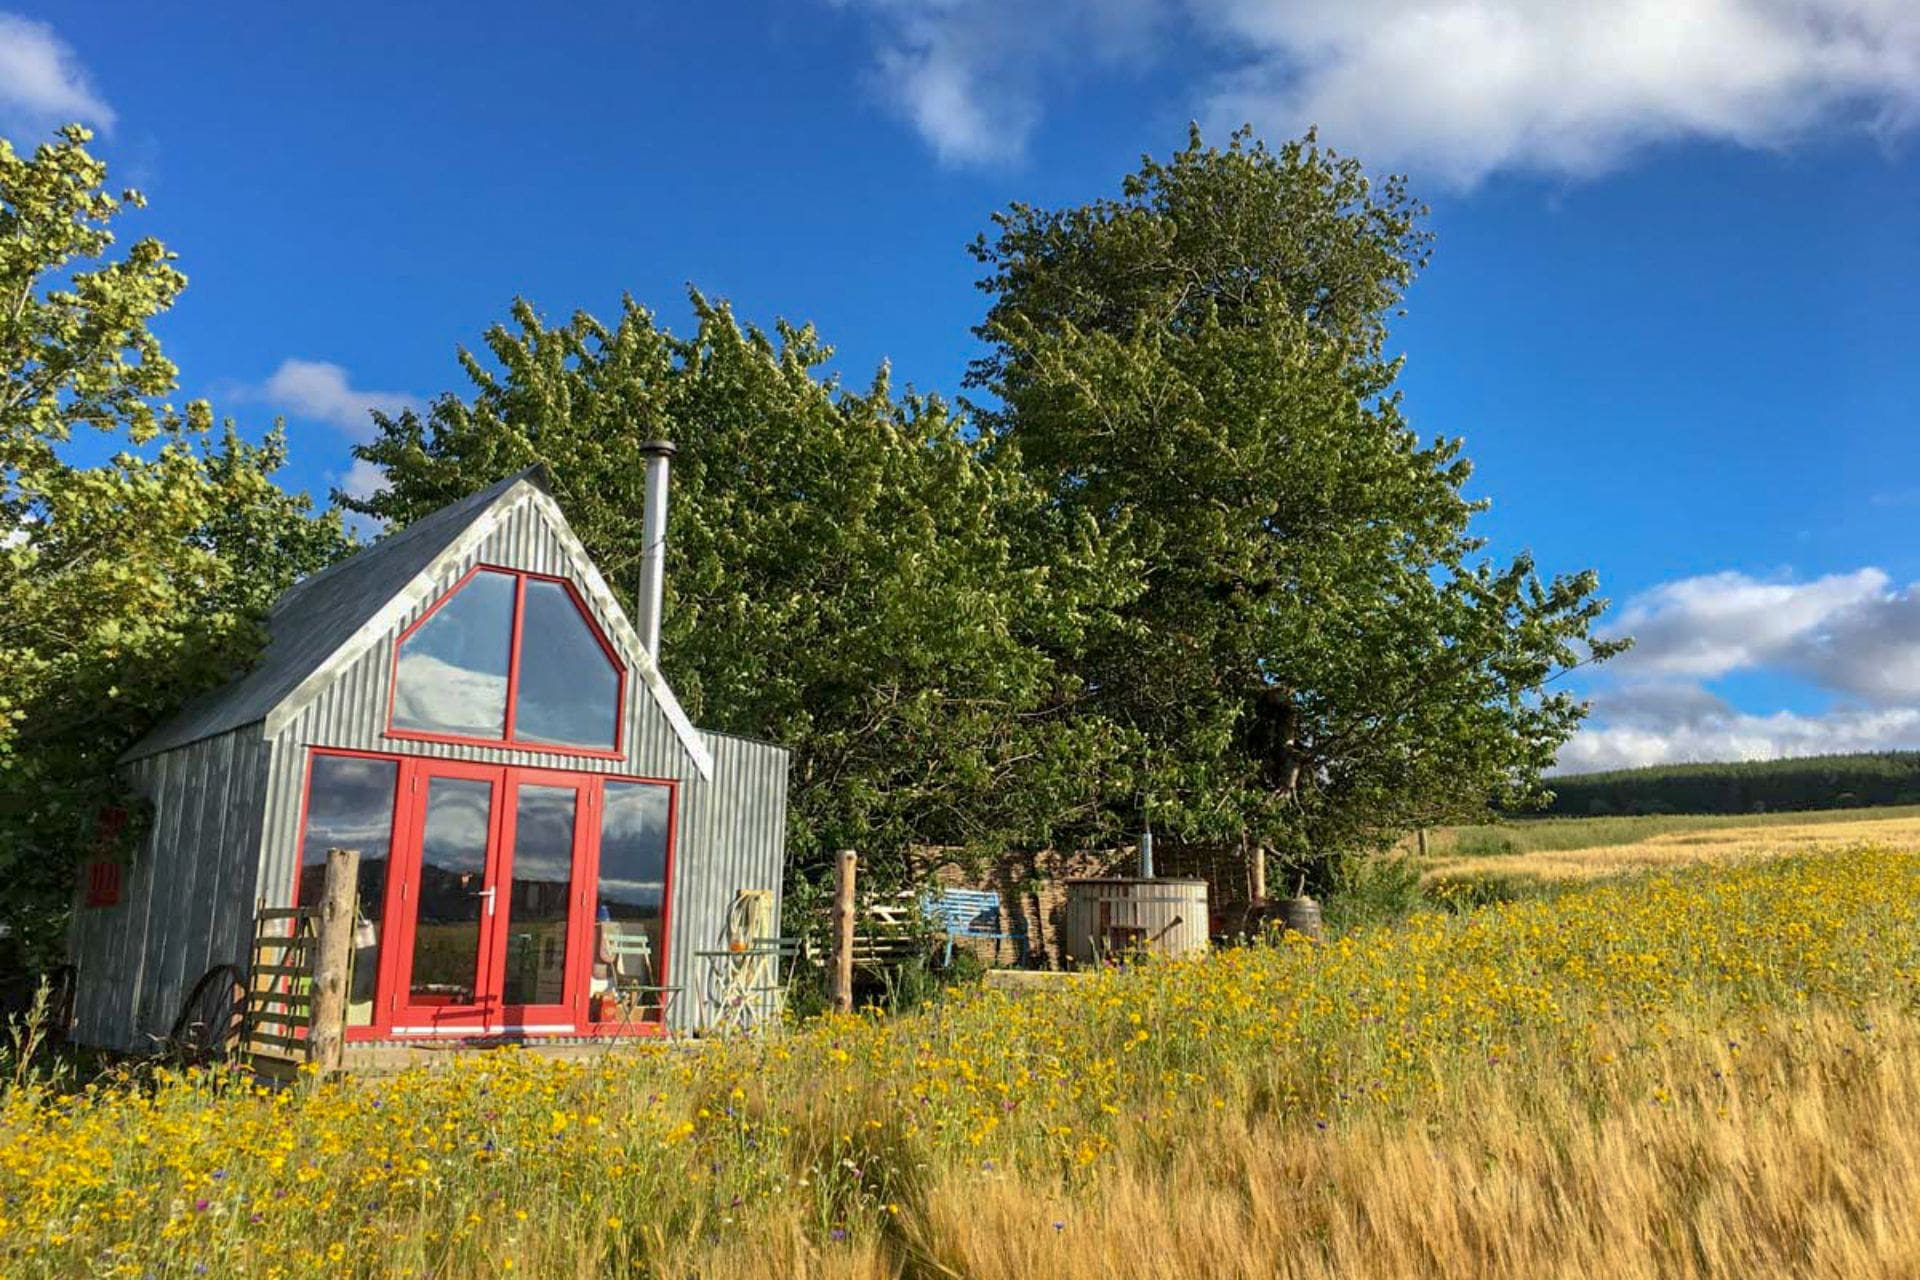 the-sheep-shed-bothy-hut-in-field-in-aberdeenshire-glamping-with-hot-tub-in-scotland